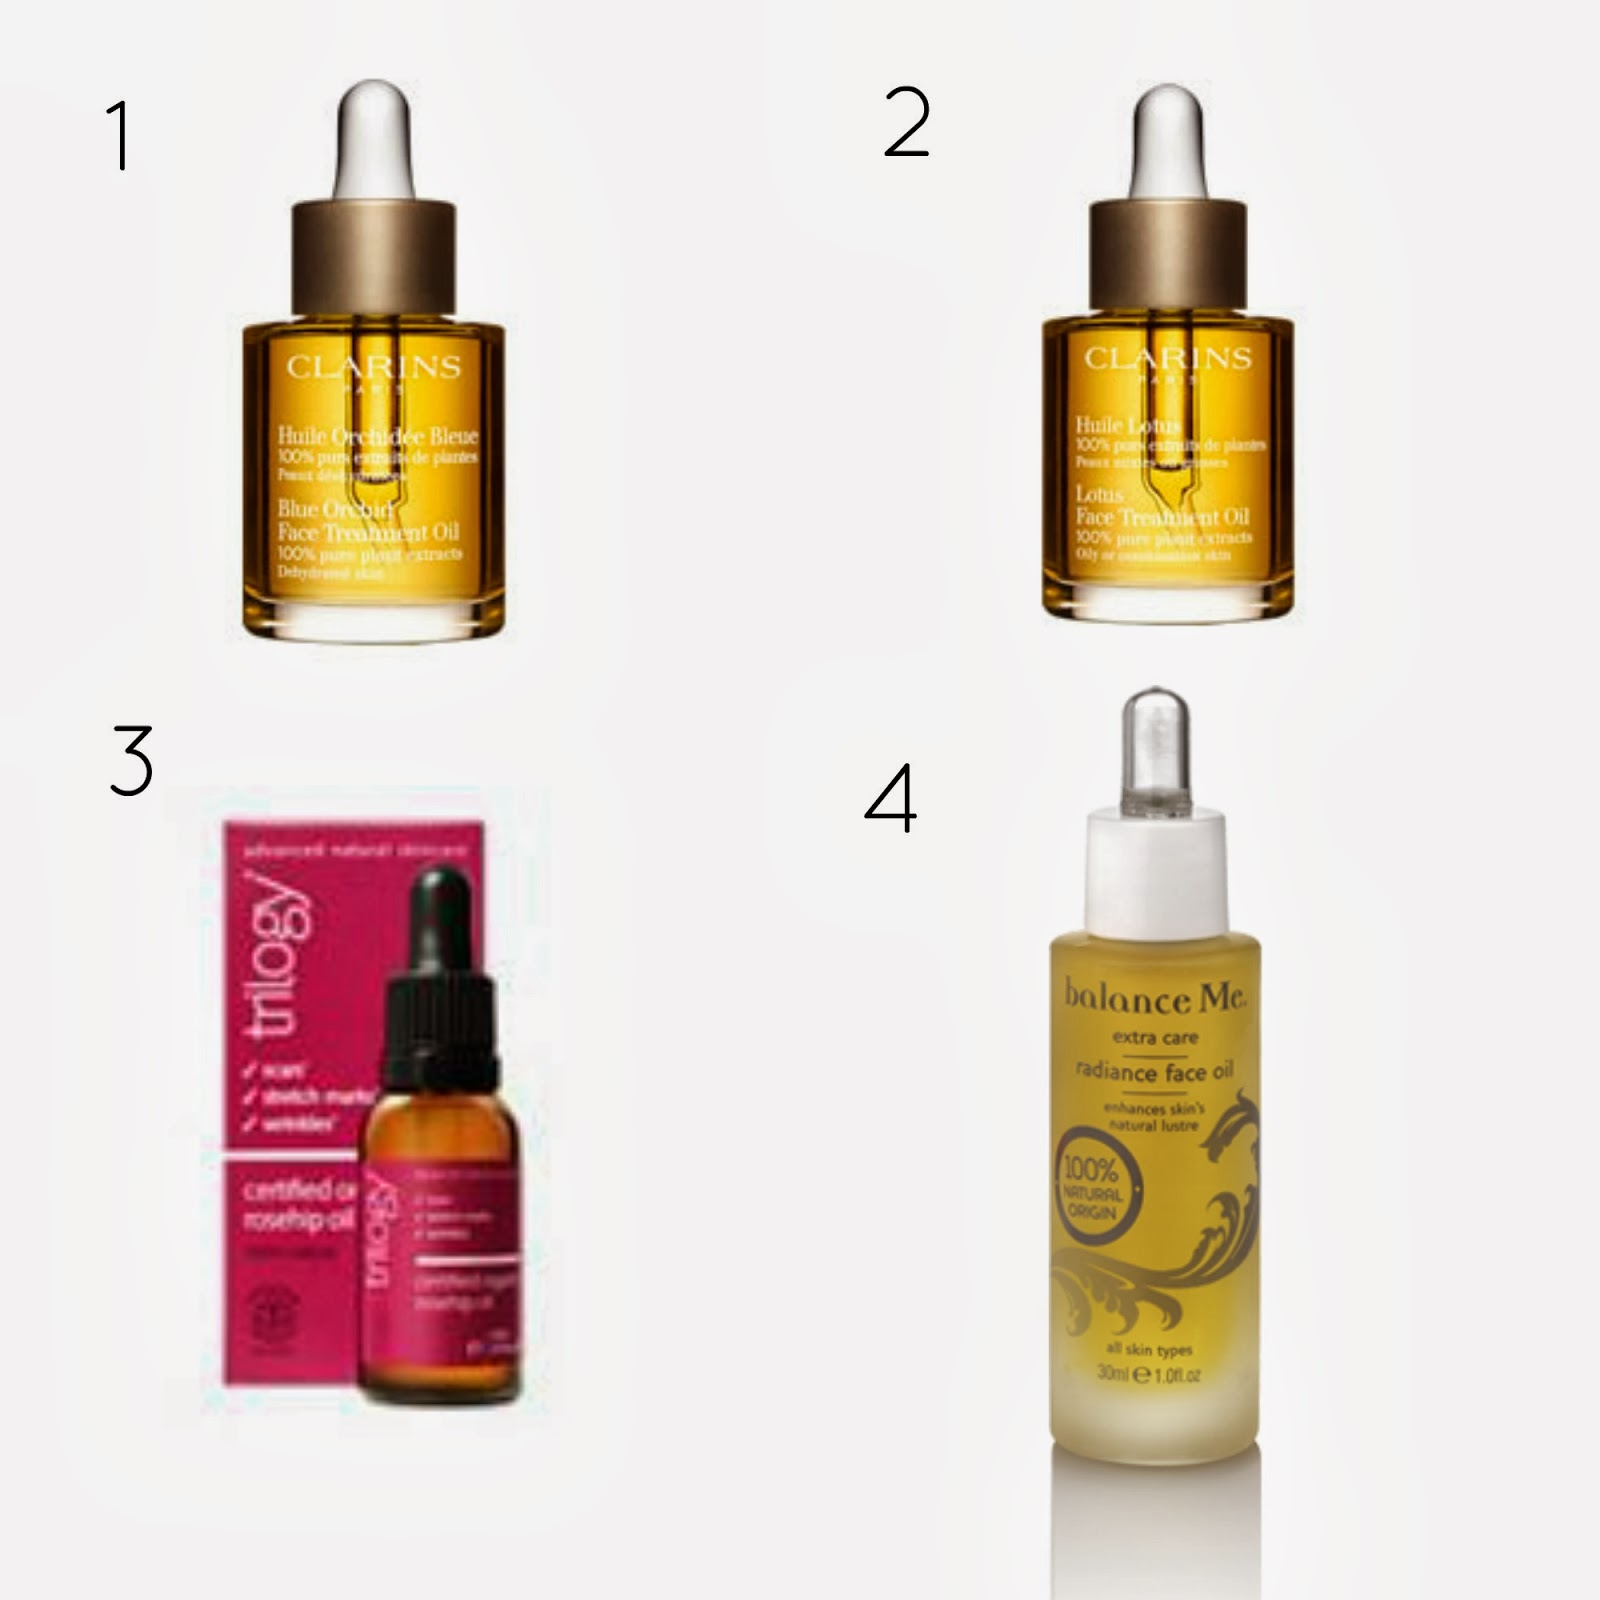 Why use a facial oil?